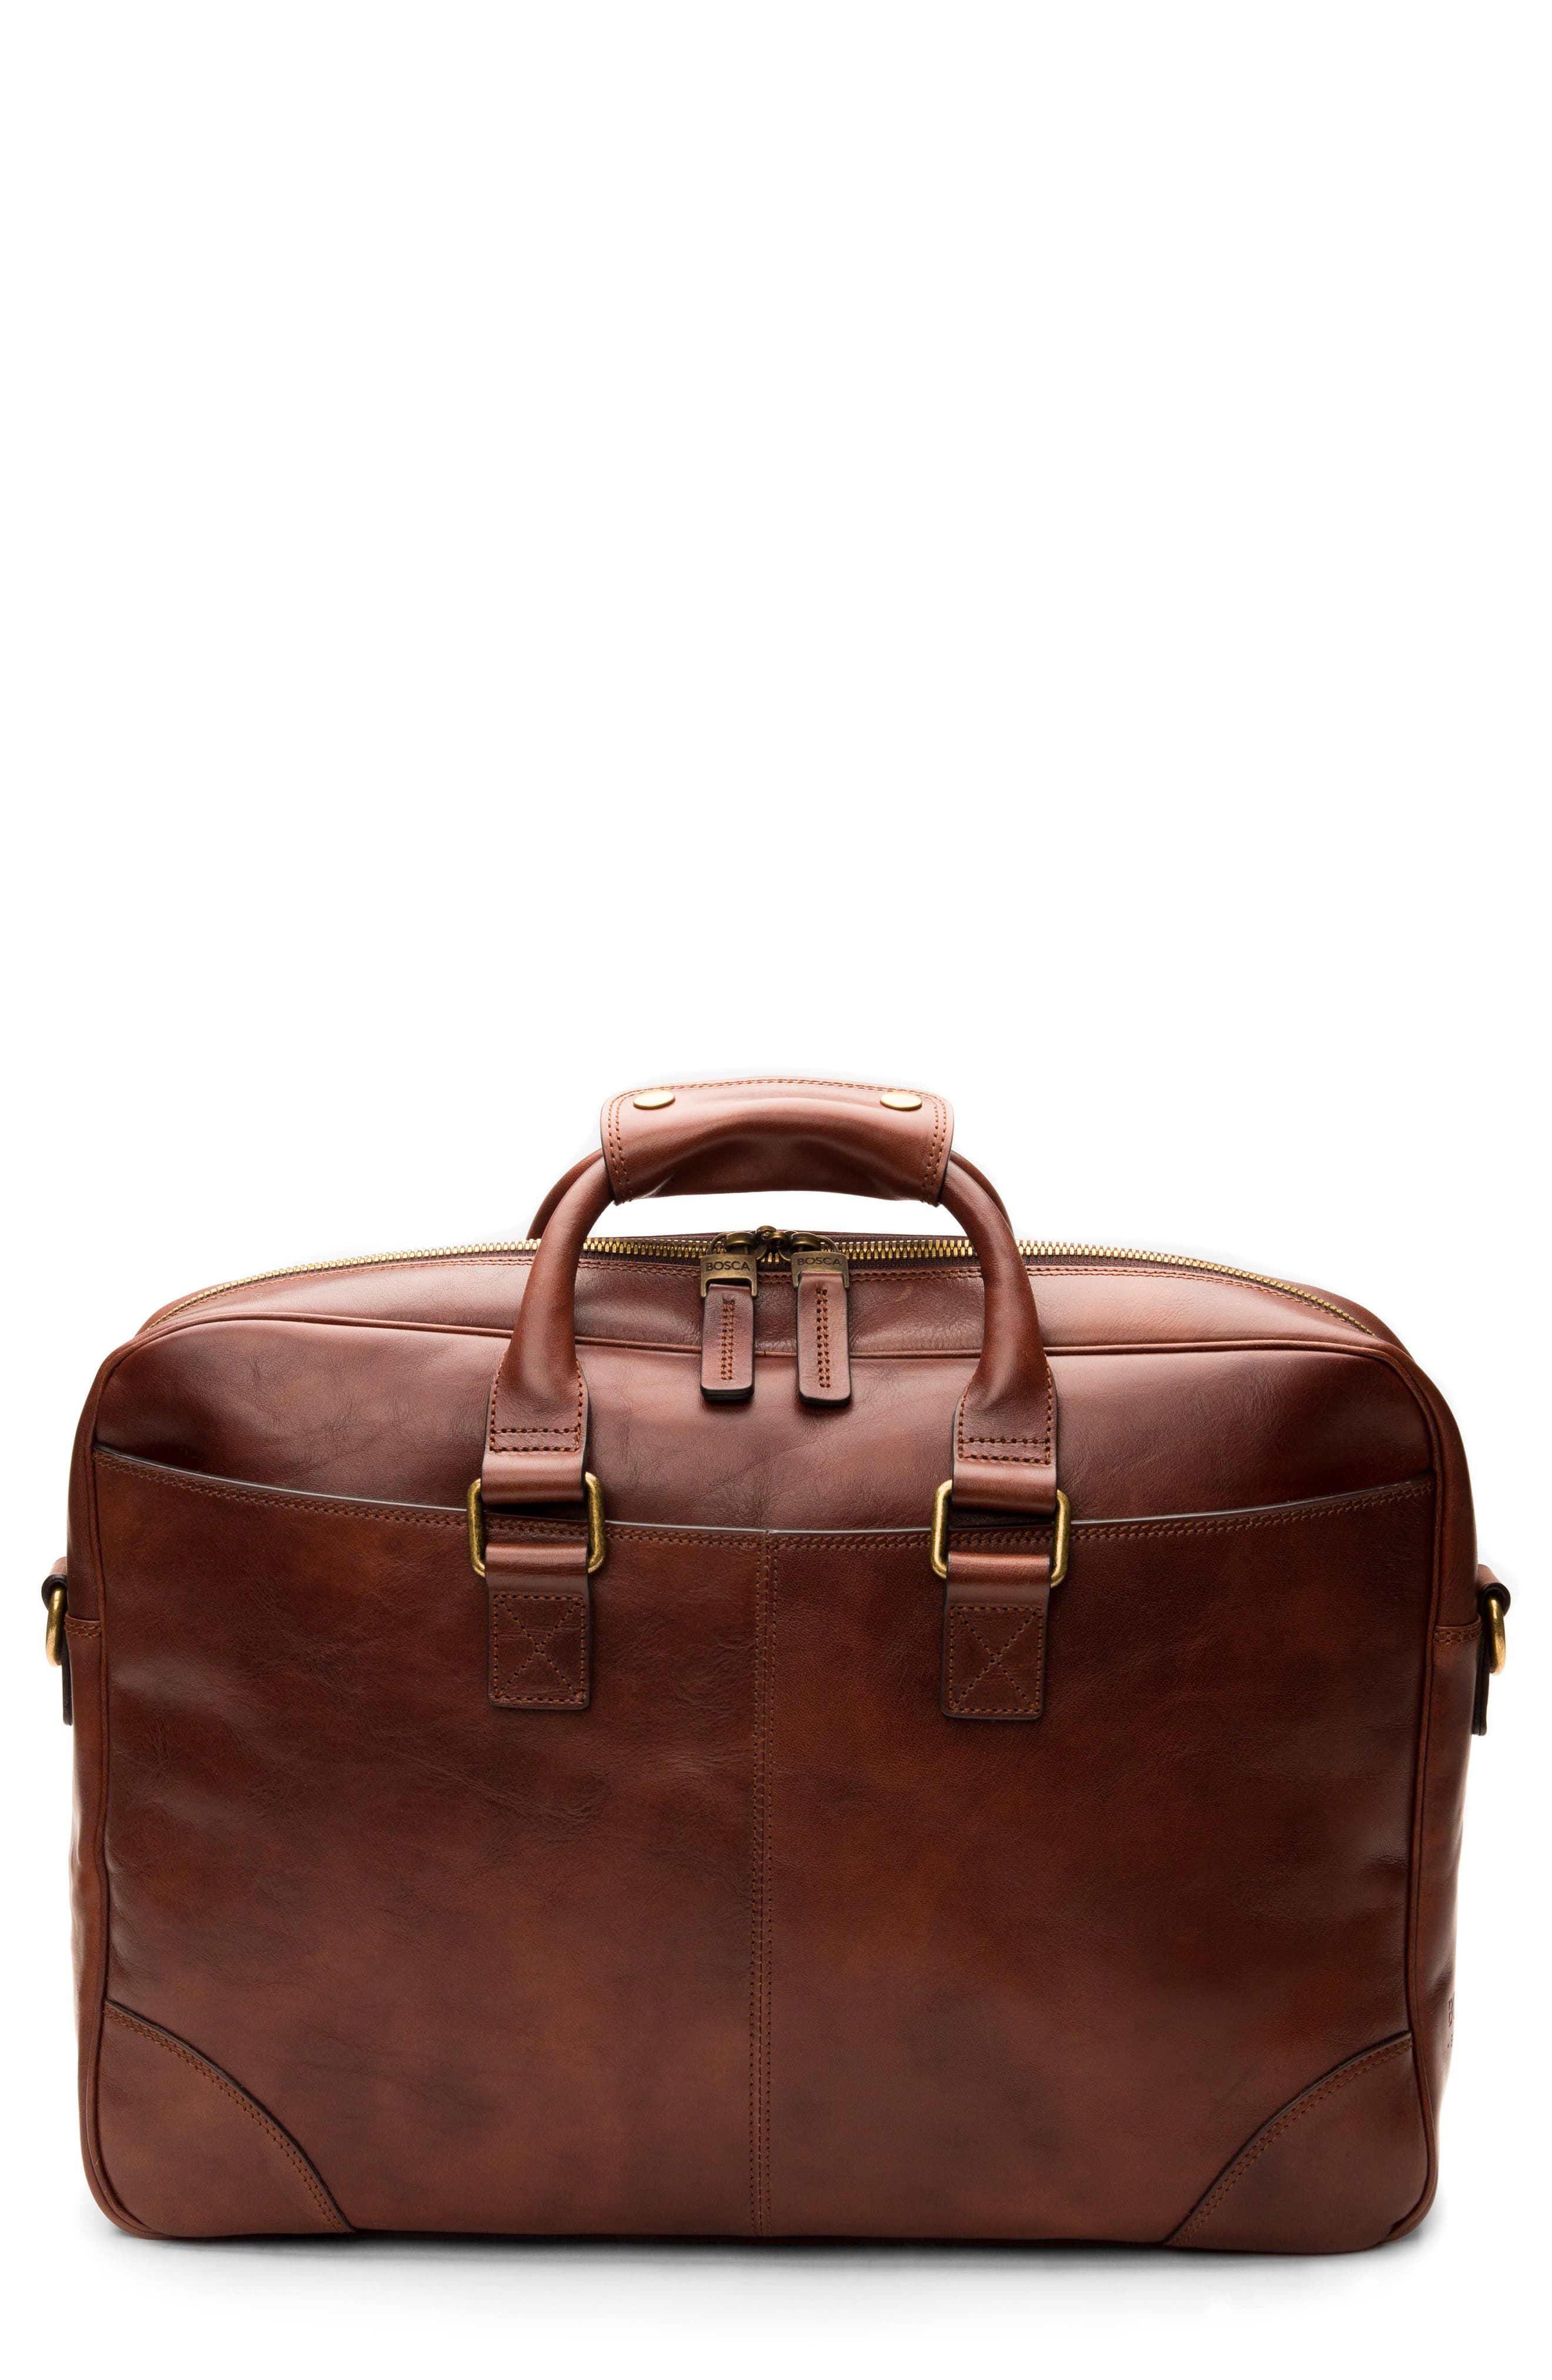 Leather Briefcase,                             Main thumbnail 1, color,                             Dark Brown